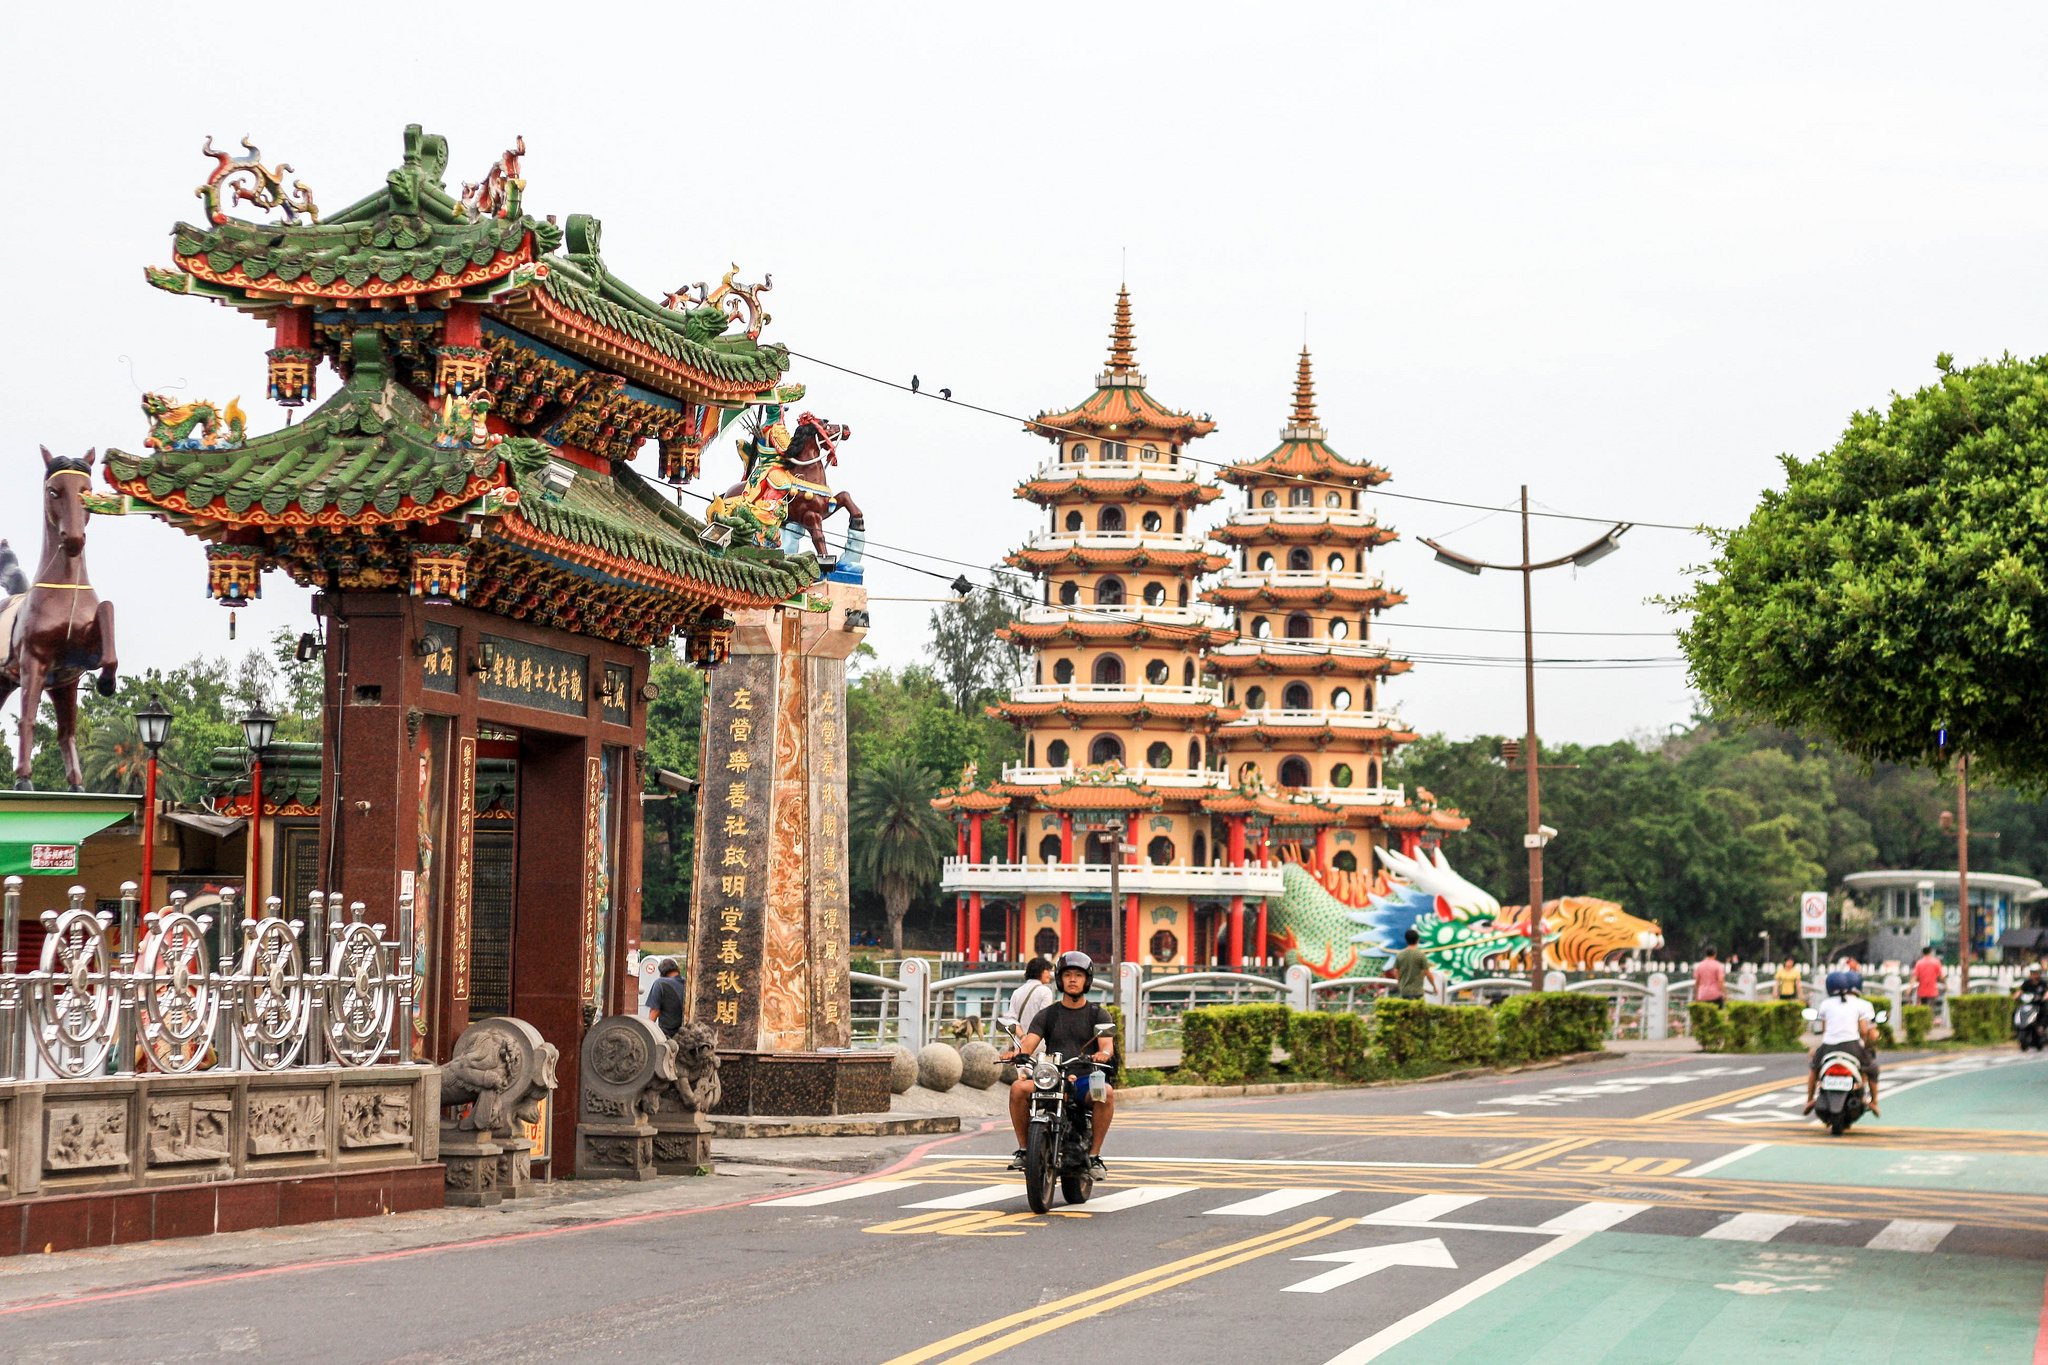 The many temples that surround Lotus Pond in Kaohsiung.